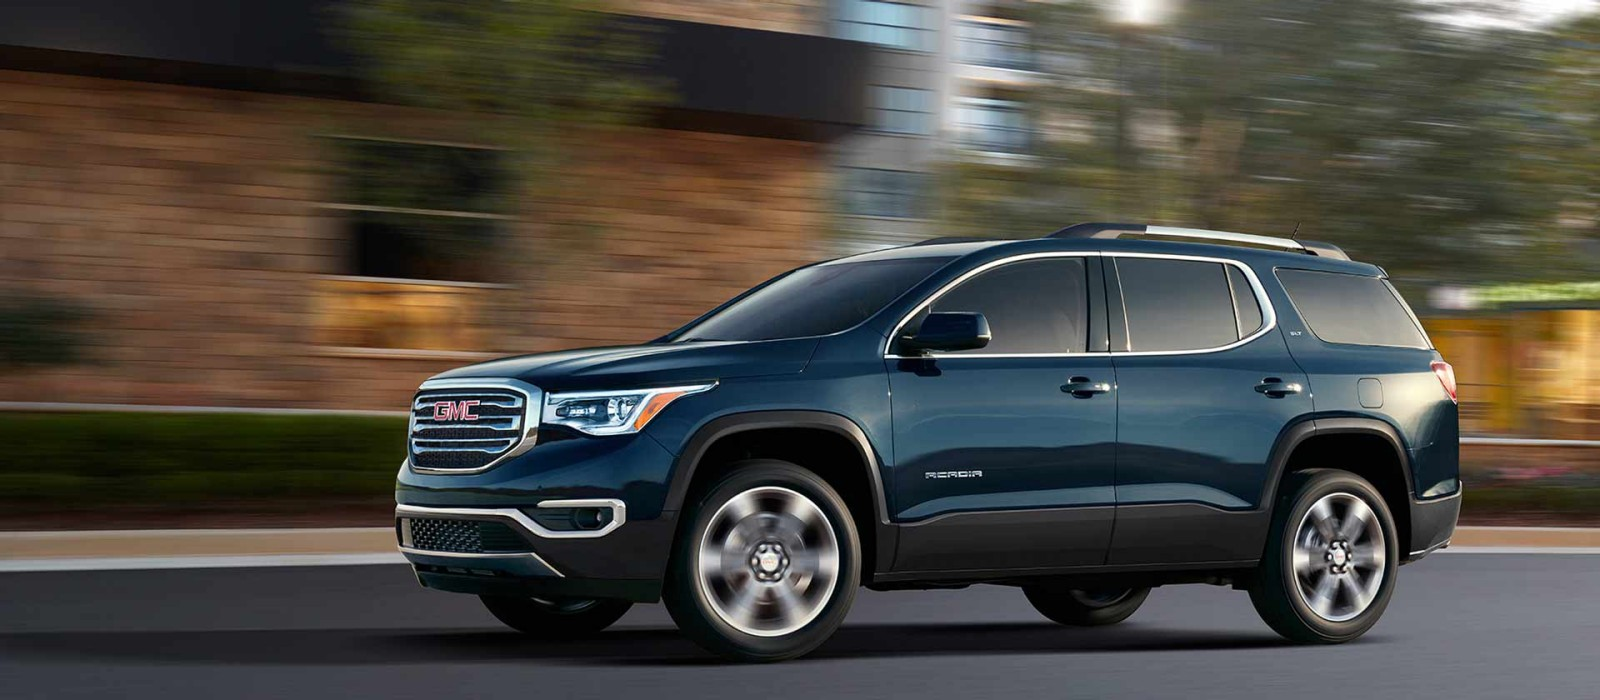 Gmc Acadia Towing Capacity >> Blogsectionlearn How To Achieve Maximum Towing Capacity With